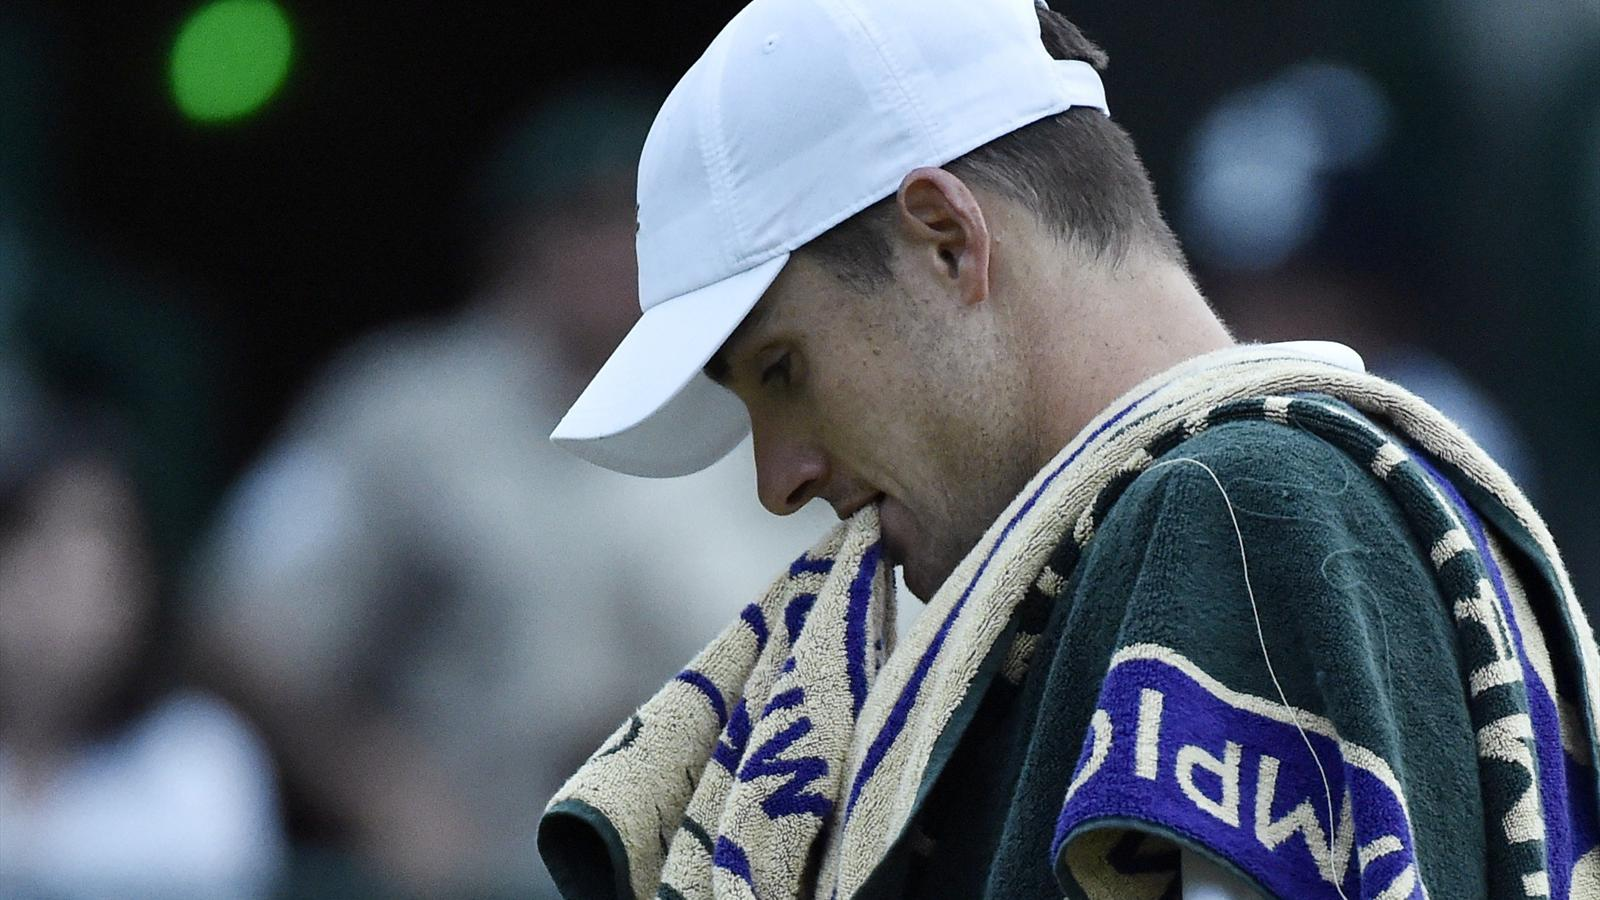 John Isner of the U.S.A. bites his towel during his match against Marin Cilic